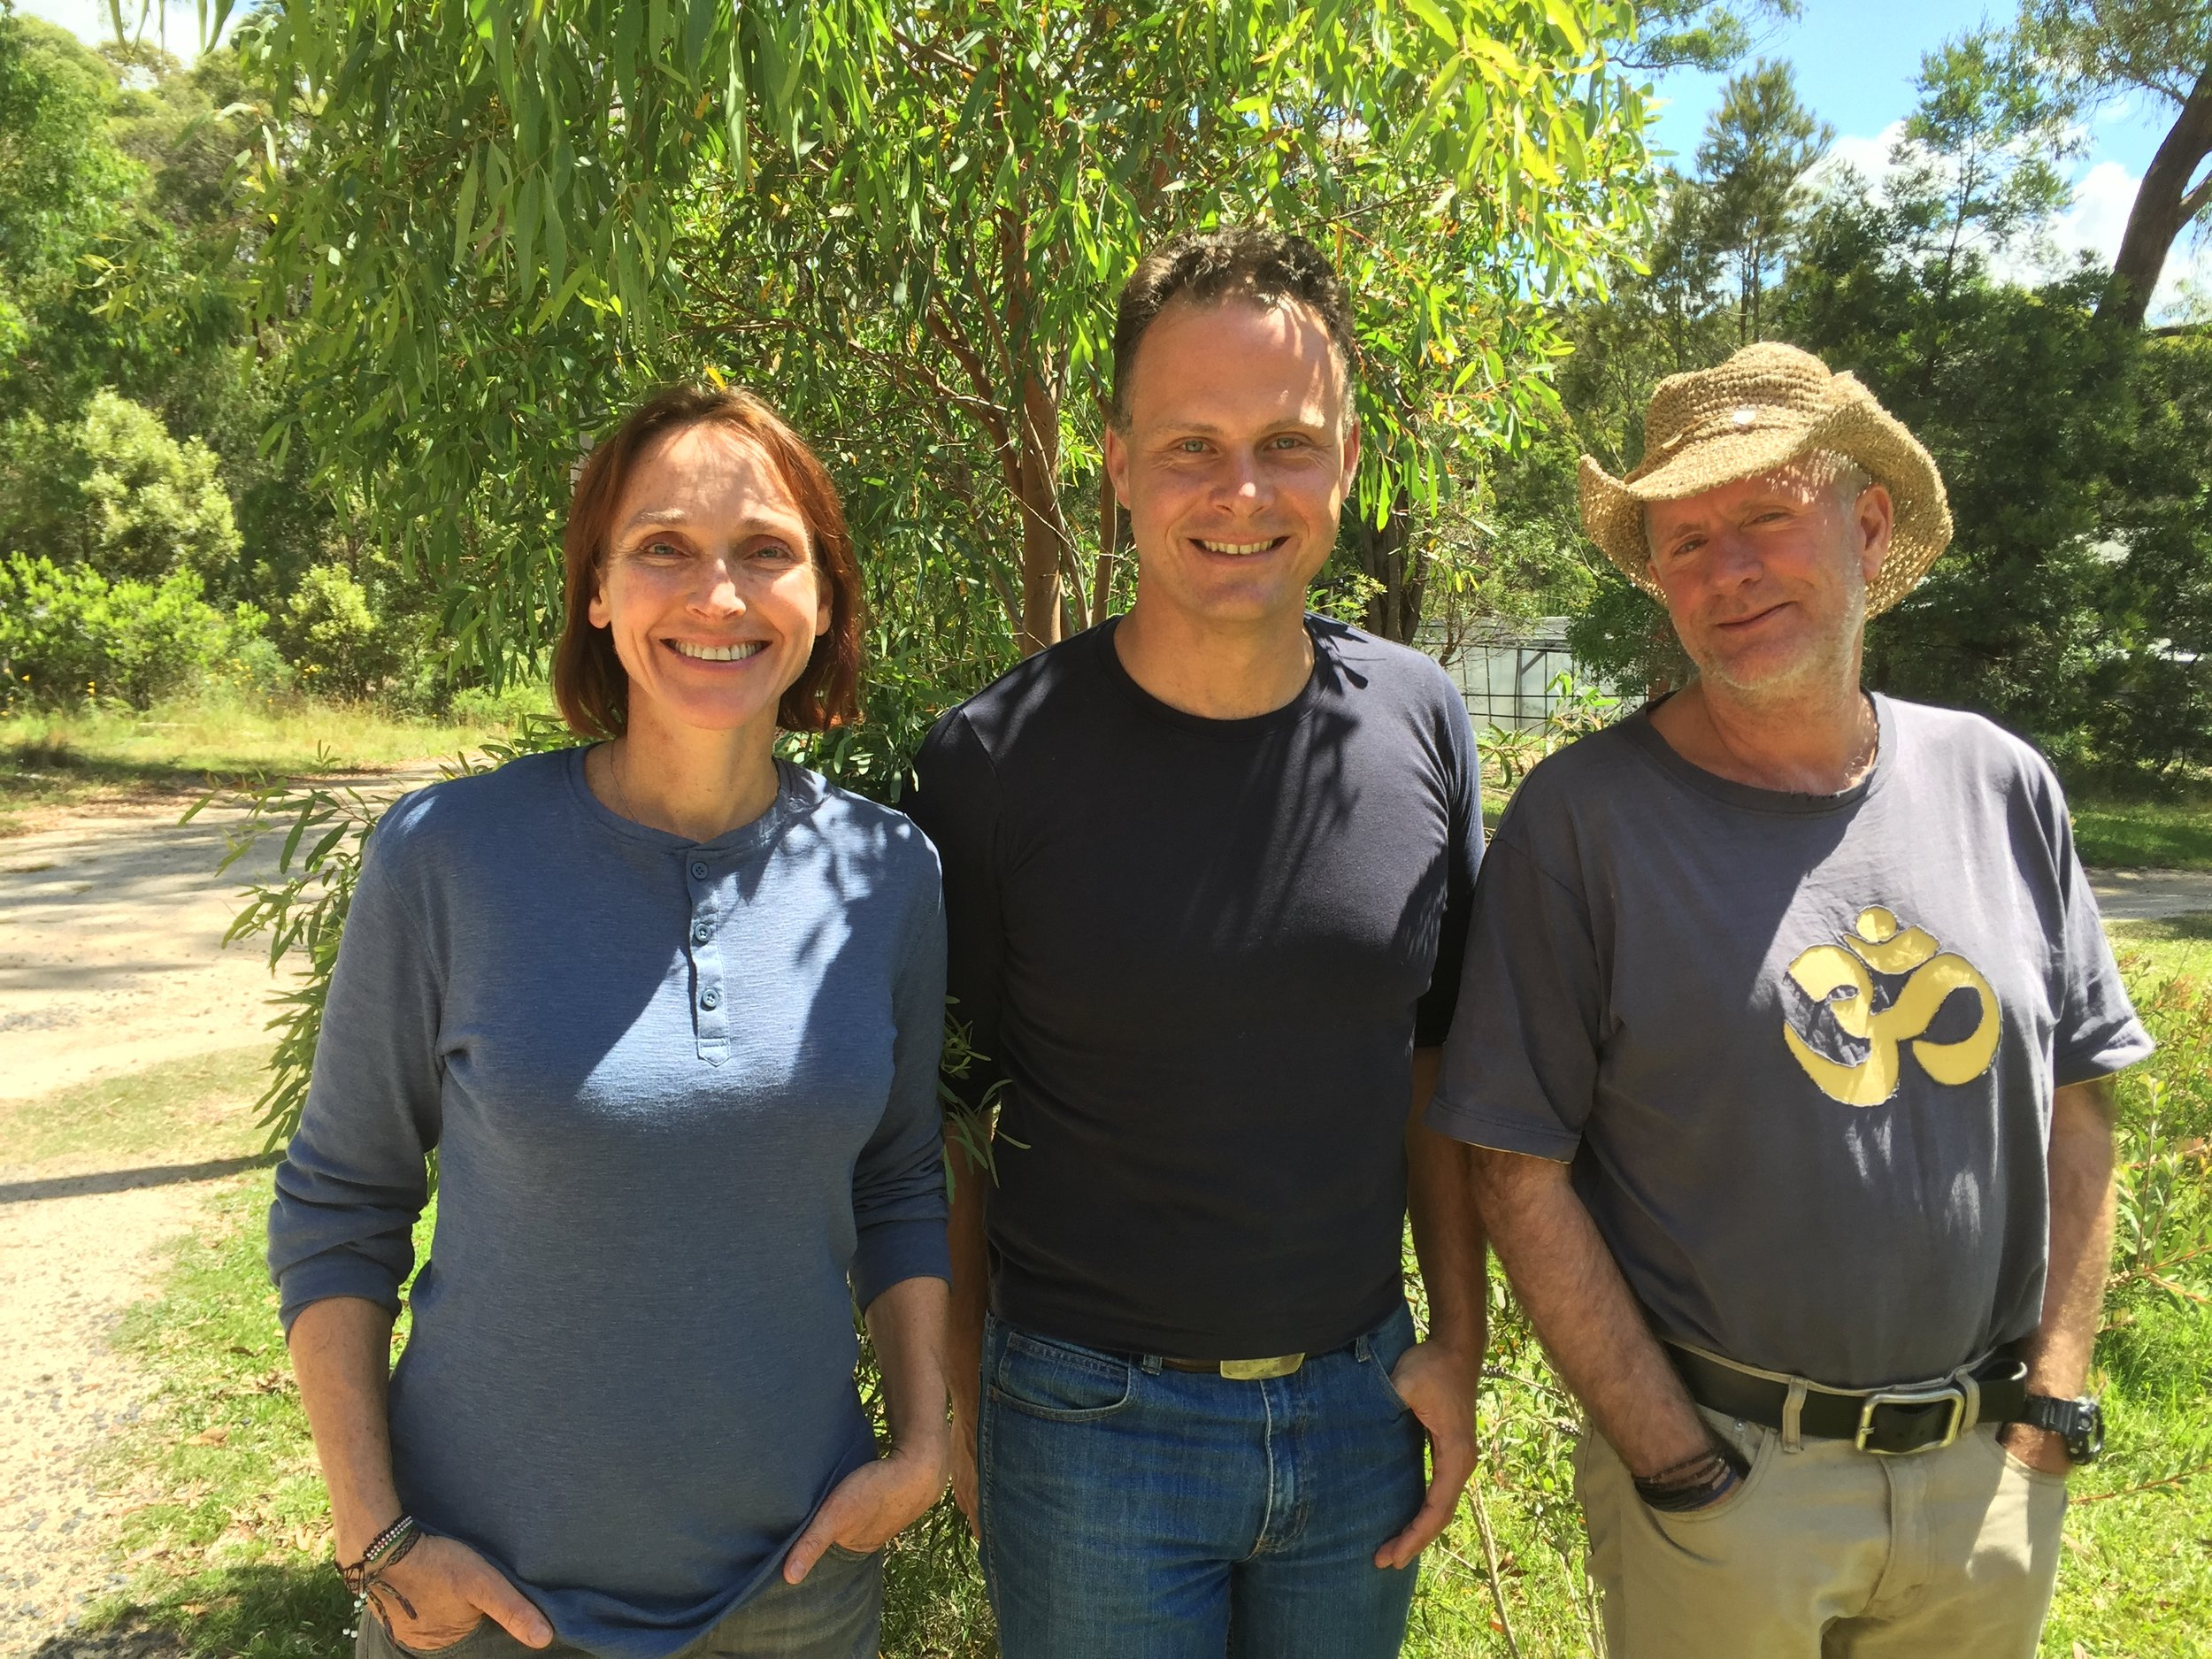 New England Greens candidate Mercurius Goldstein with friends at the sanctuary.